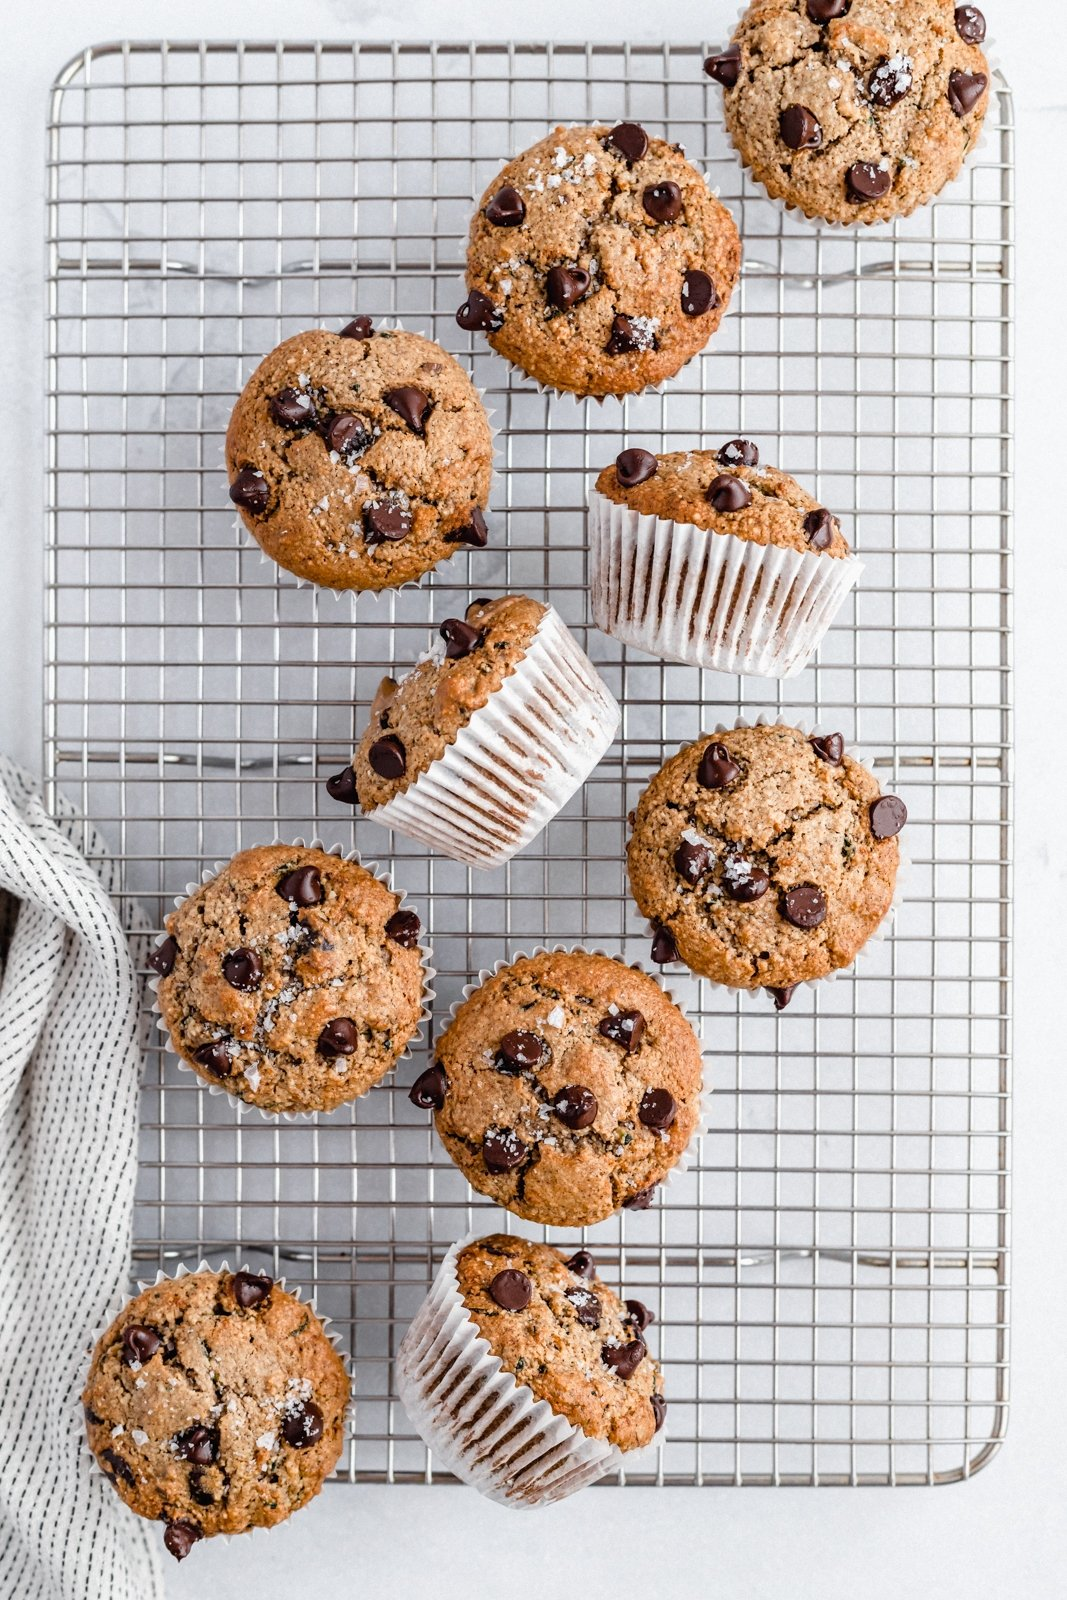 healthy chocolate chip zucchini muffins on a wire rack